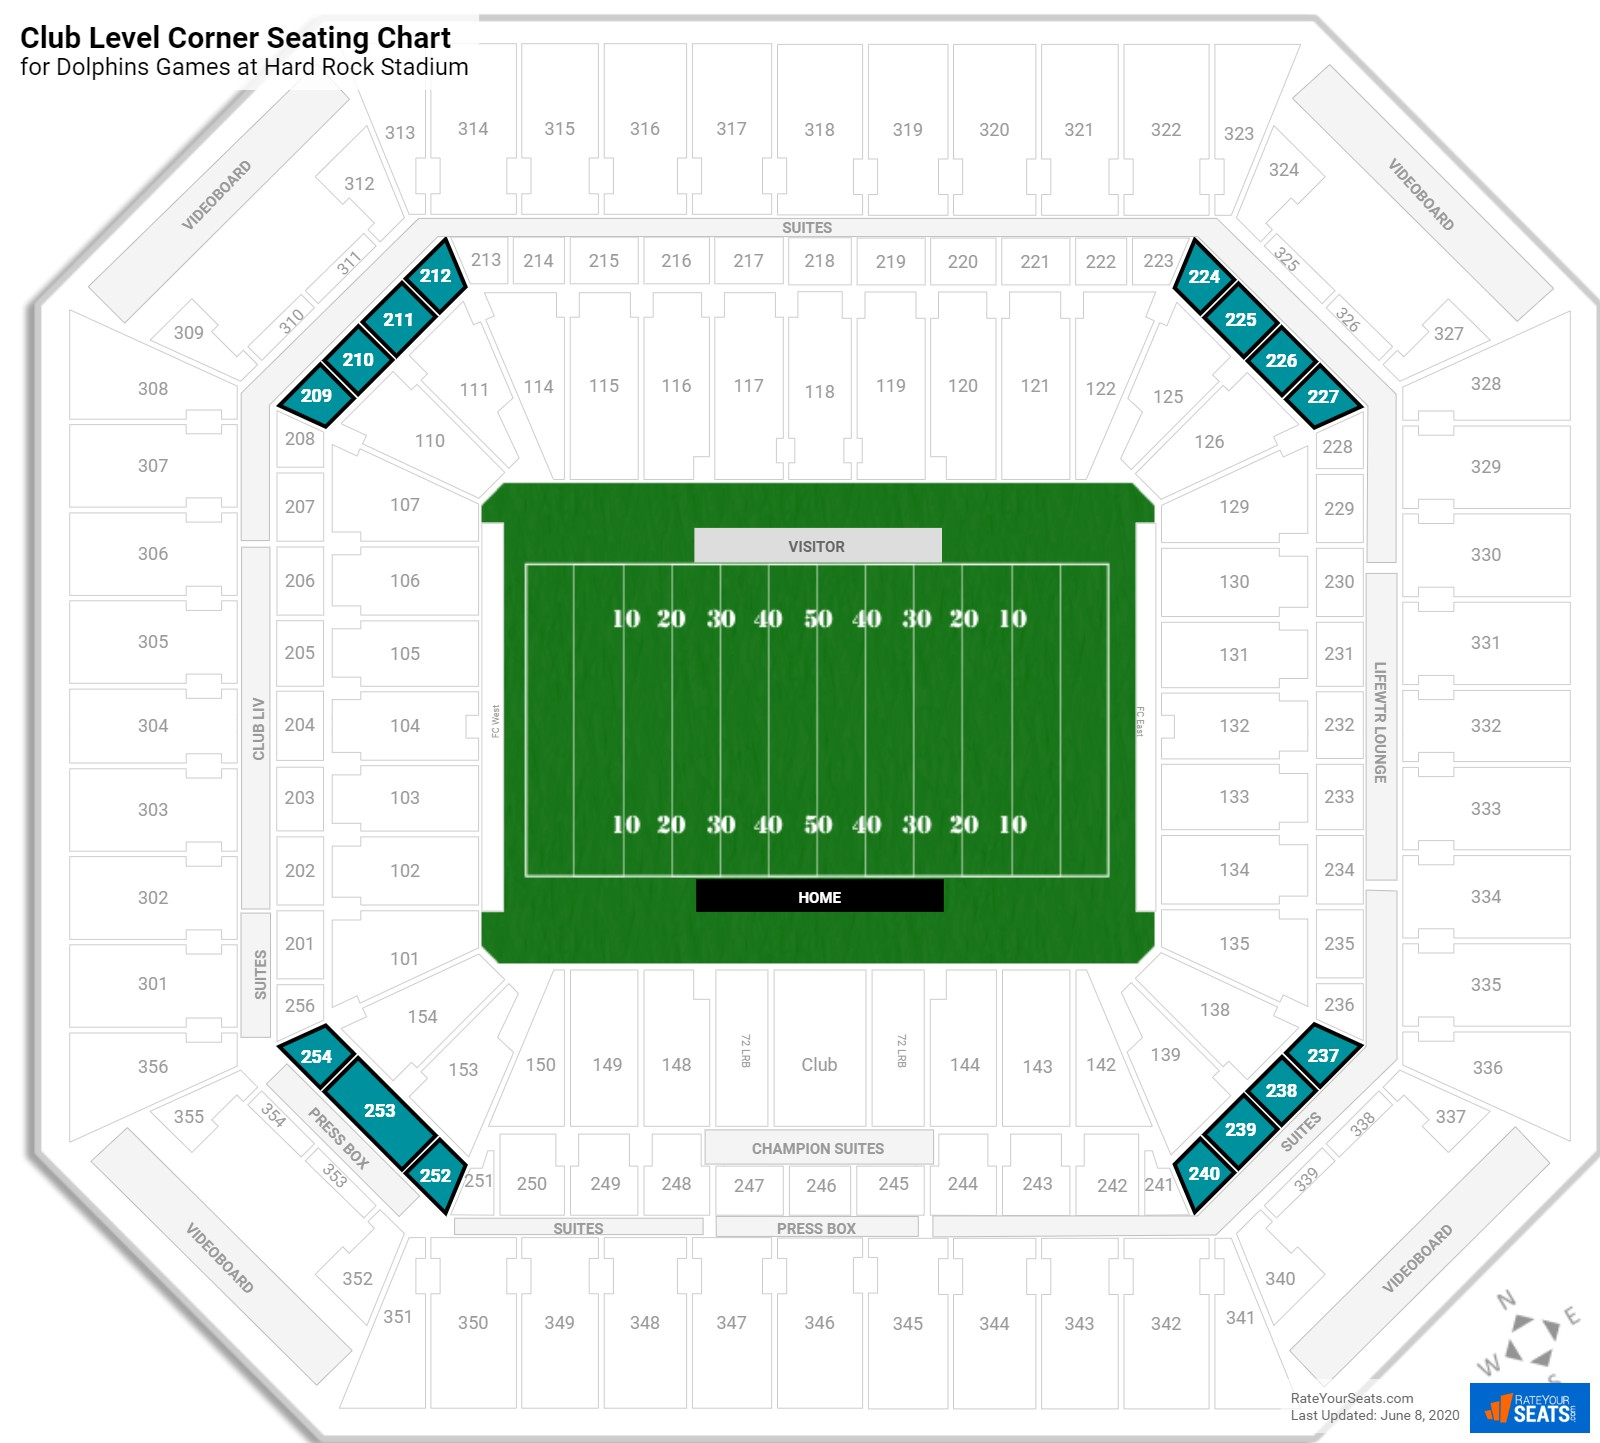 Hard Rock Stadium Club Level Corner seating chart